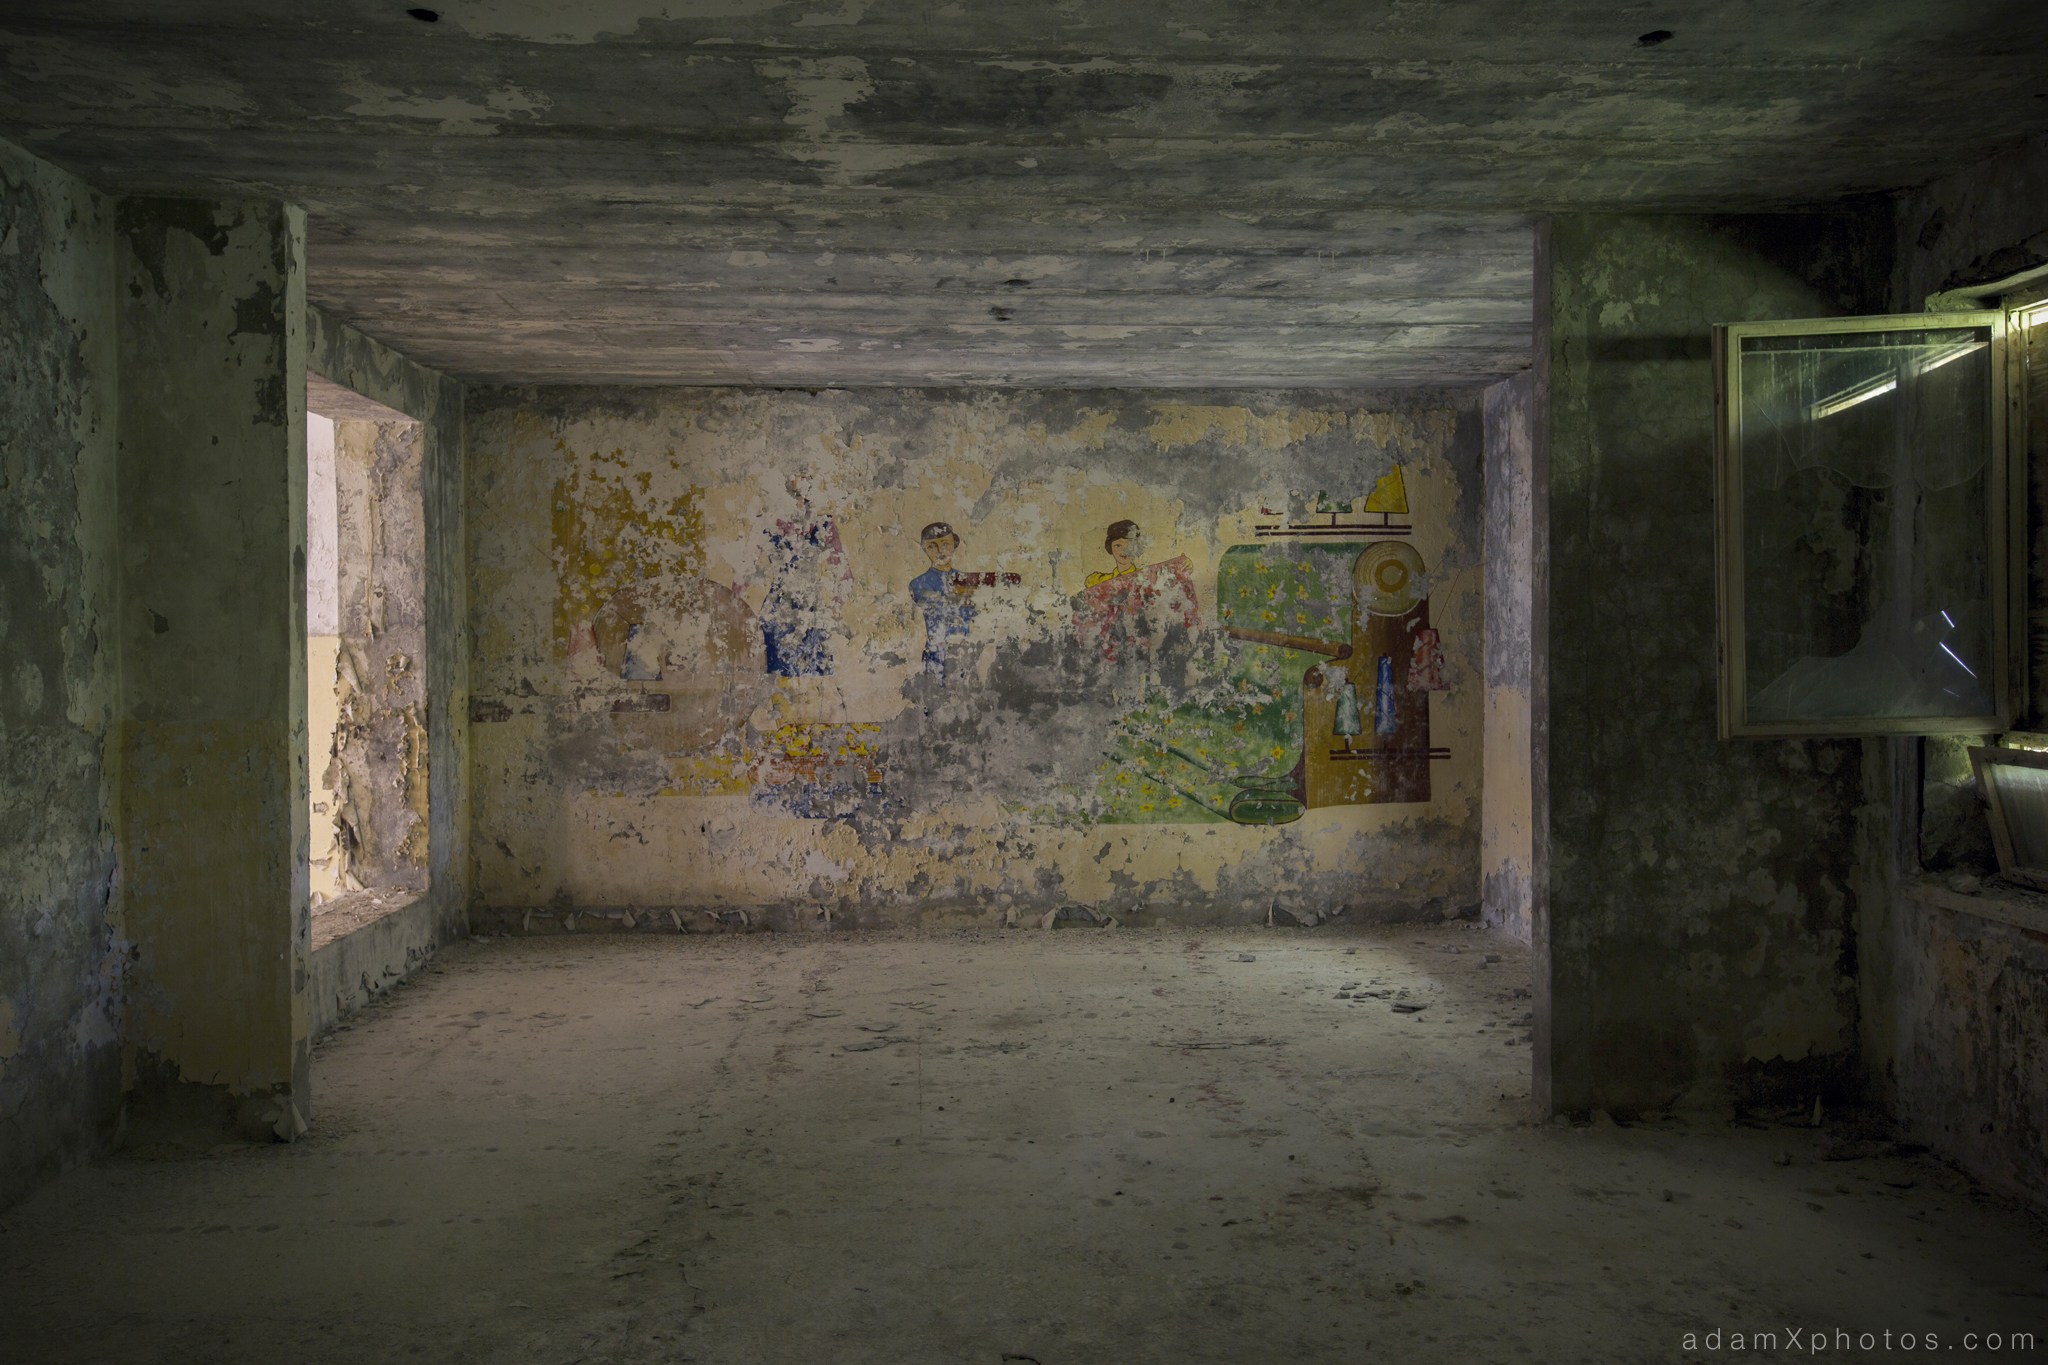 Adam X Urbex Urban Exploration Abandoned Germany Wunsdorf barracks soviet mural detail wall painting